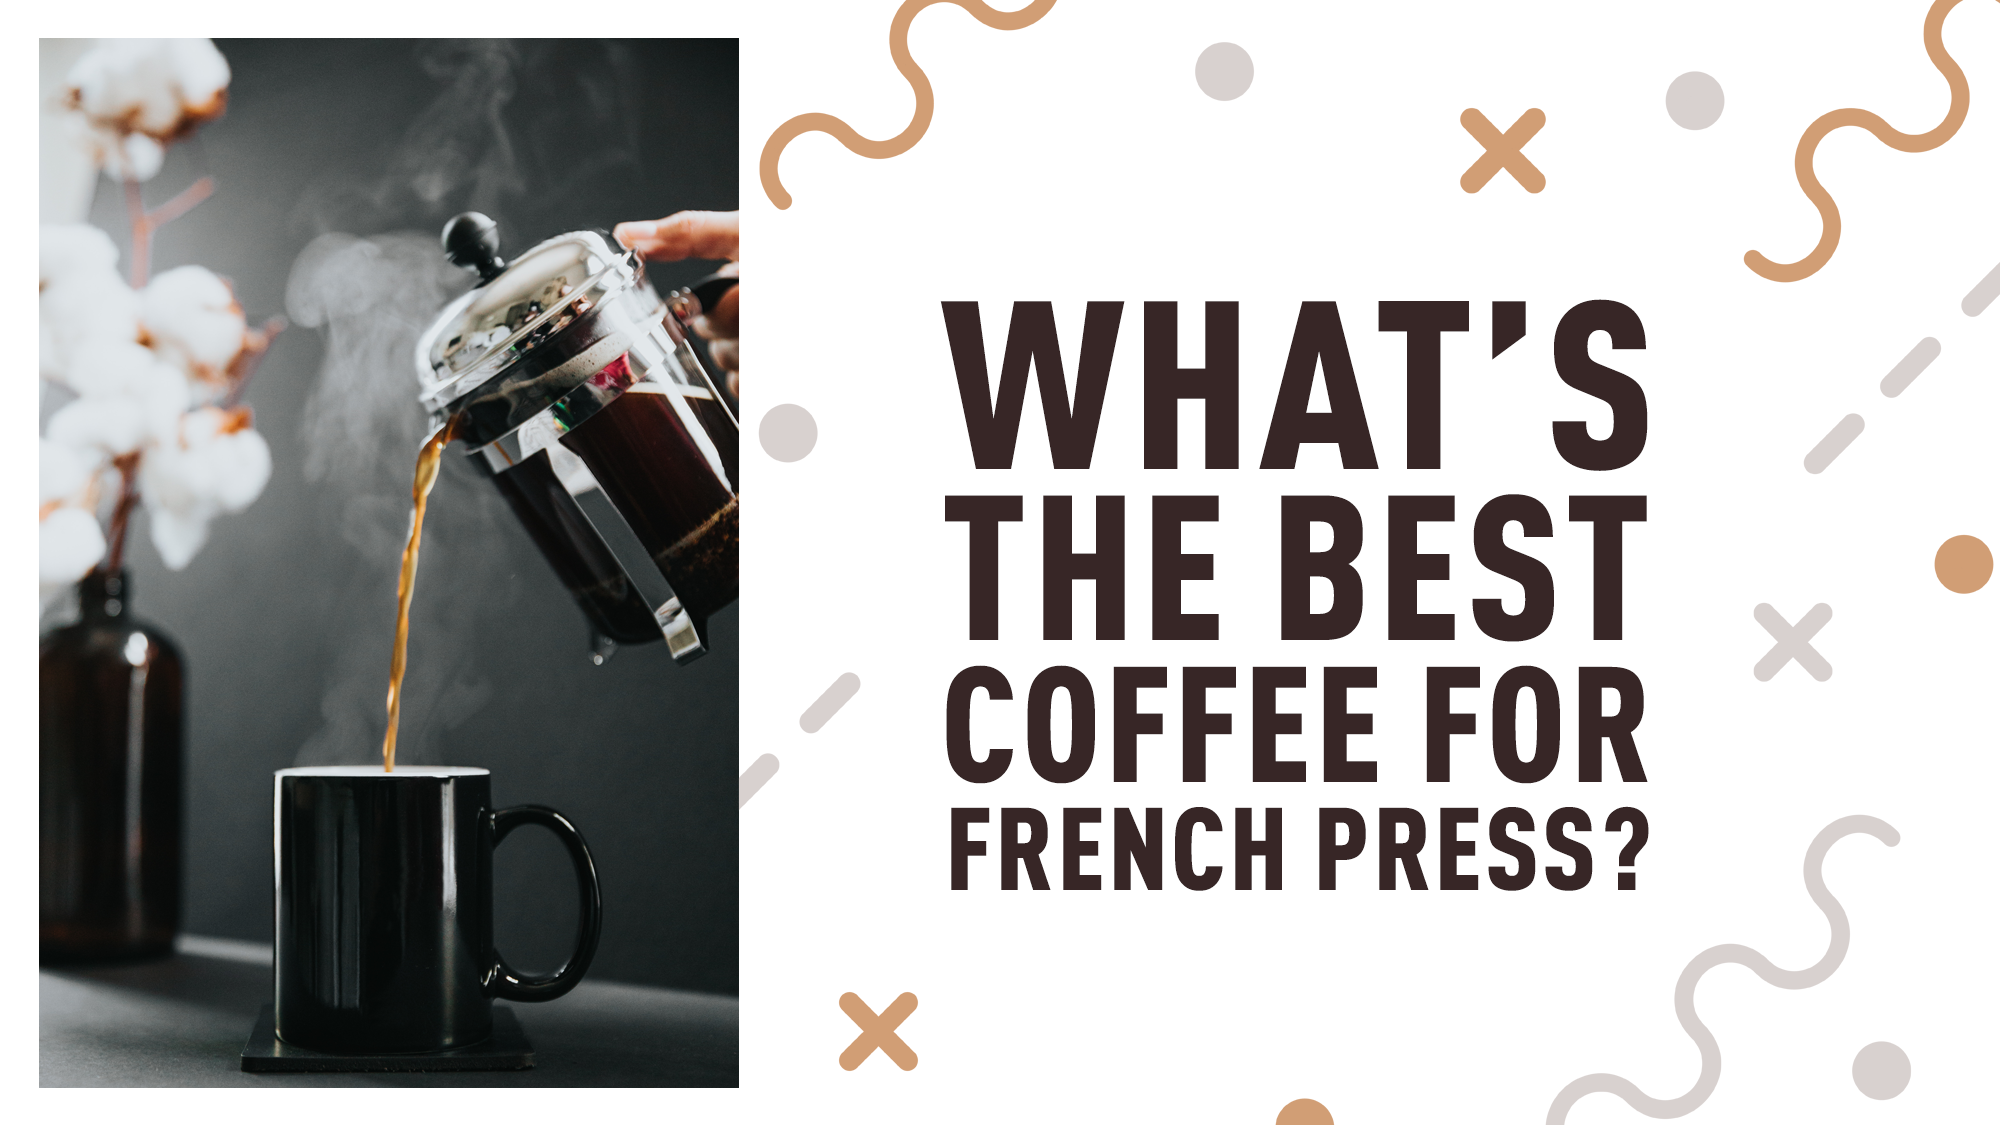 What is the Best Coffee for French Press?